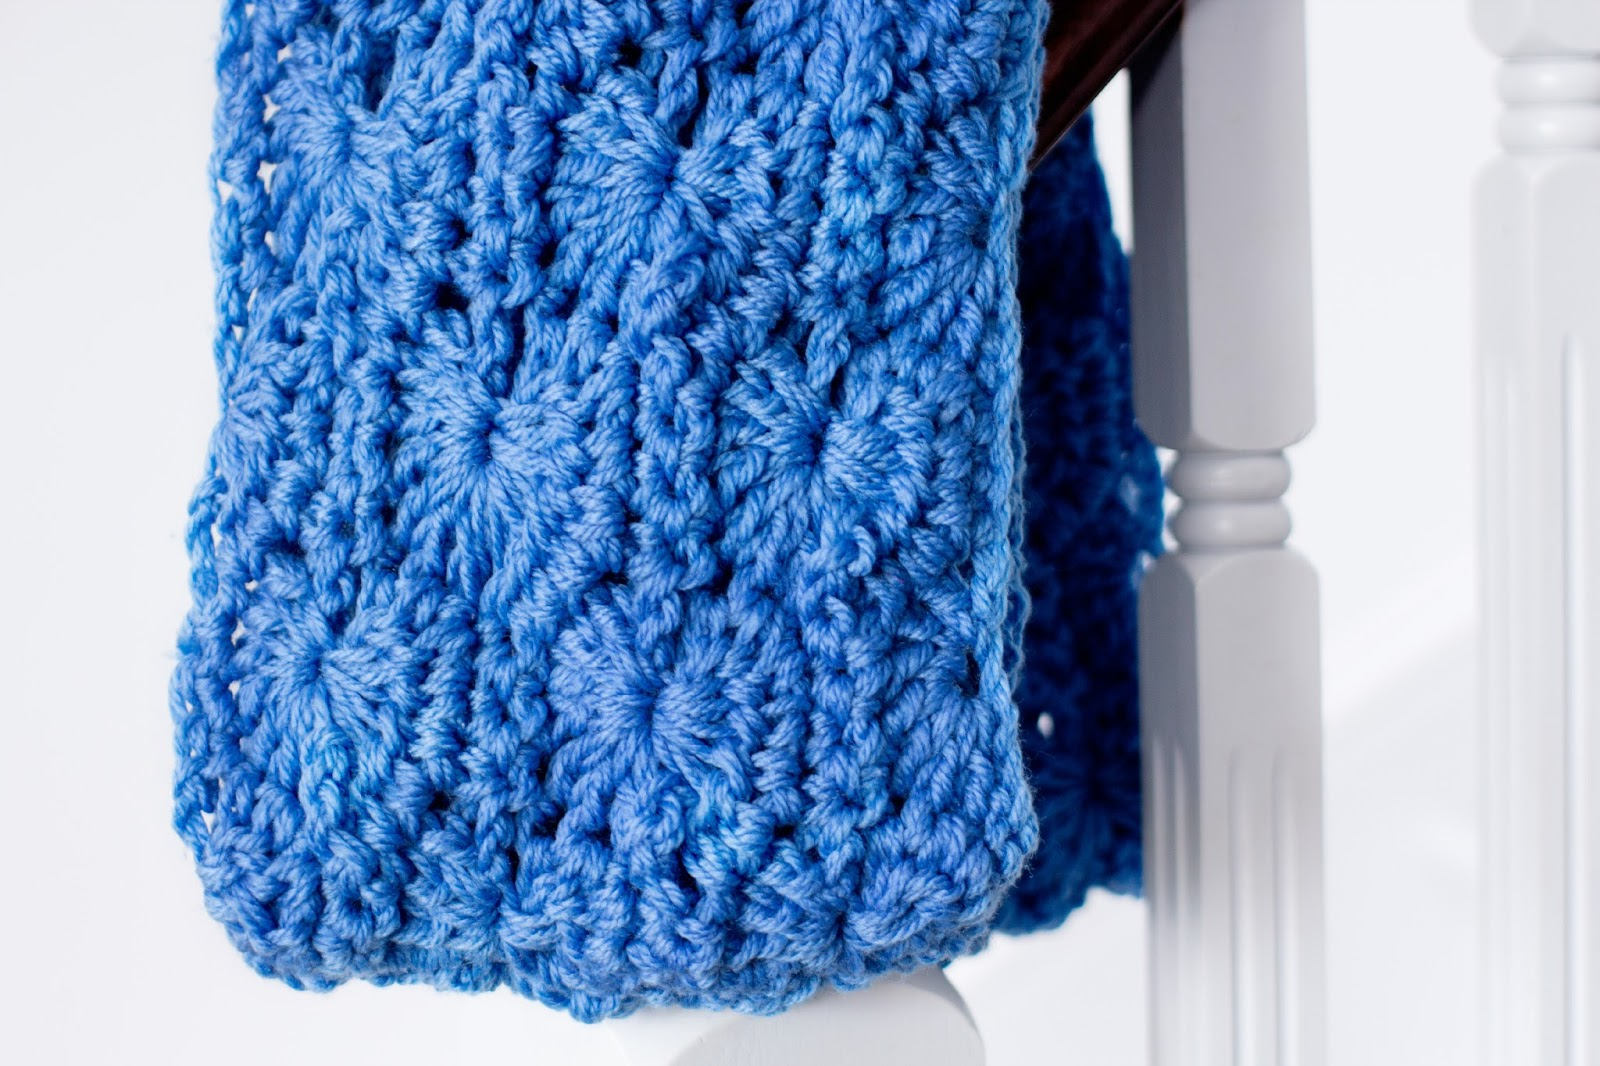 Crochet : ... Craft, Crochet, Create: A Unique Gift ~ Infinity Scarf Crochet Pattern